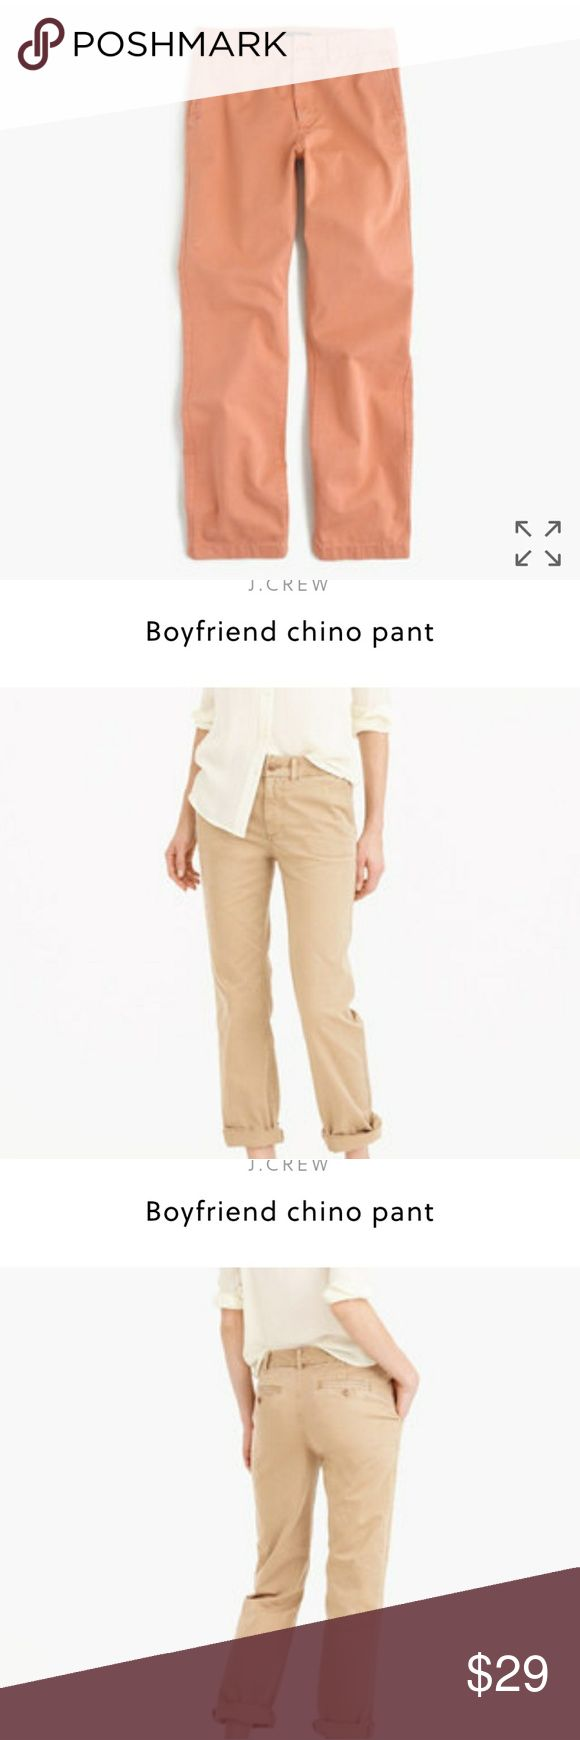 J. Crew Boyfriend chino pant Color sundrenched clay. Smoke free home. Offers welcome. J. Crew Pants